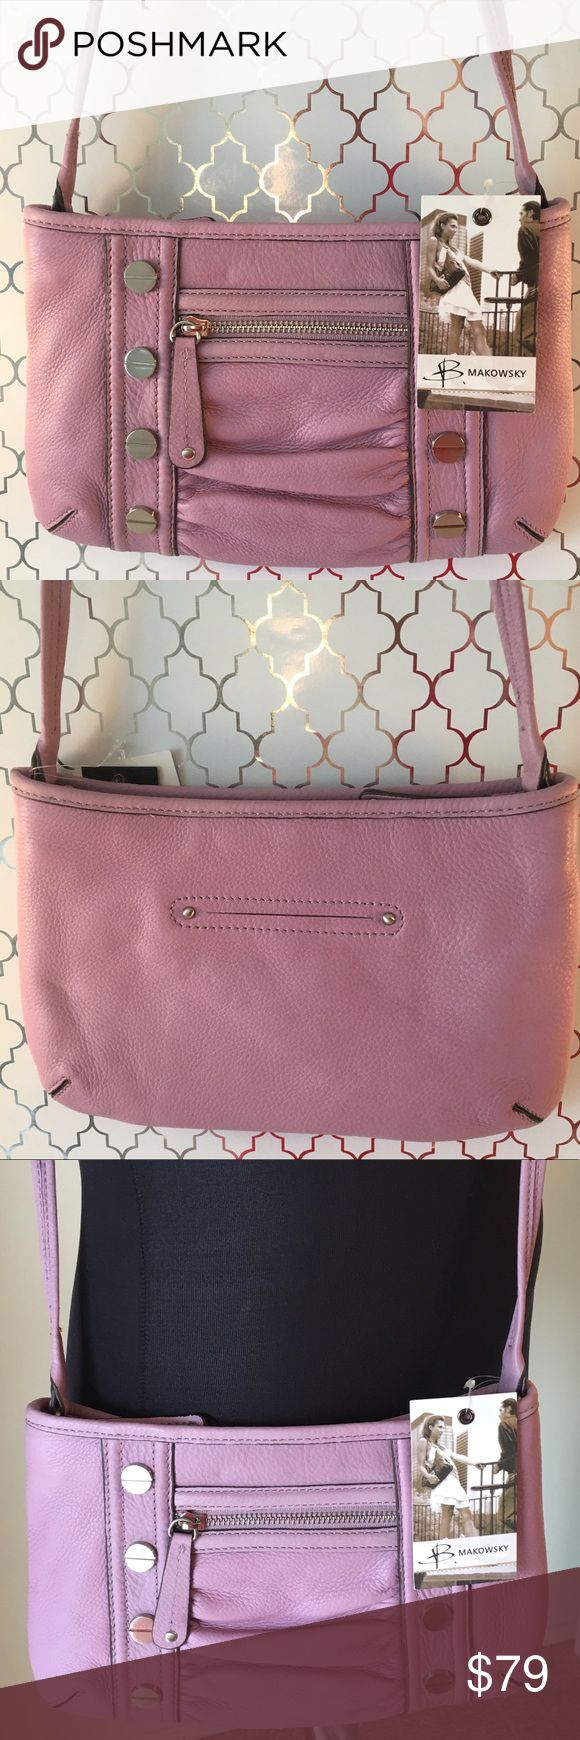 🆕B. MAKOWSKY NEW LAVENDER CROSSBODY 💯AUTHENTIC B. MAKOWSKY NEW BEAUTIFUL LAVENDER LEATHER CROSSBODY BAG 💯AUTHENTIC. STUNNING SNE STYLISH TOTALLY ON TREND. SUPER SOFT GENUINE LEATHER. PURCHASED AND WAS NEVER USED. SO BEAUTIFUL IN PALE LAVENDER! THIS GREAT BAG HAS TWO OUTSIDE POCKETS! INSIDE IS A GREAT ZIP WALL POCKET. THIS STUNNING BAG ALSO HAS A ZIP TOP CLOSURE TO KEEP YOUR ITEMS SAFE . THE BAG MEASURES ALMOST 11 INCHES WIDE AND ALMOST 7 INCHES TALL. THE PERFECT BAG! THE LOVELY CROSSBODY…